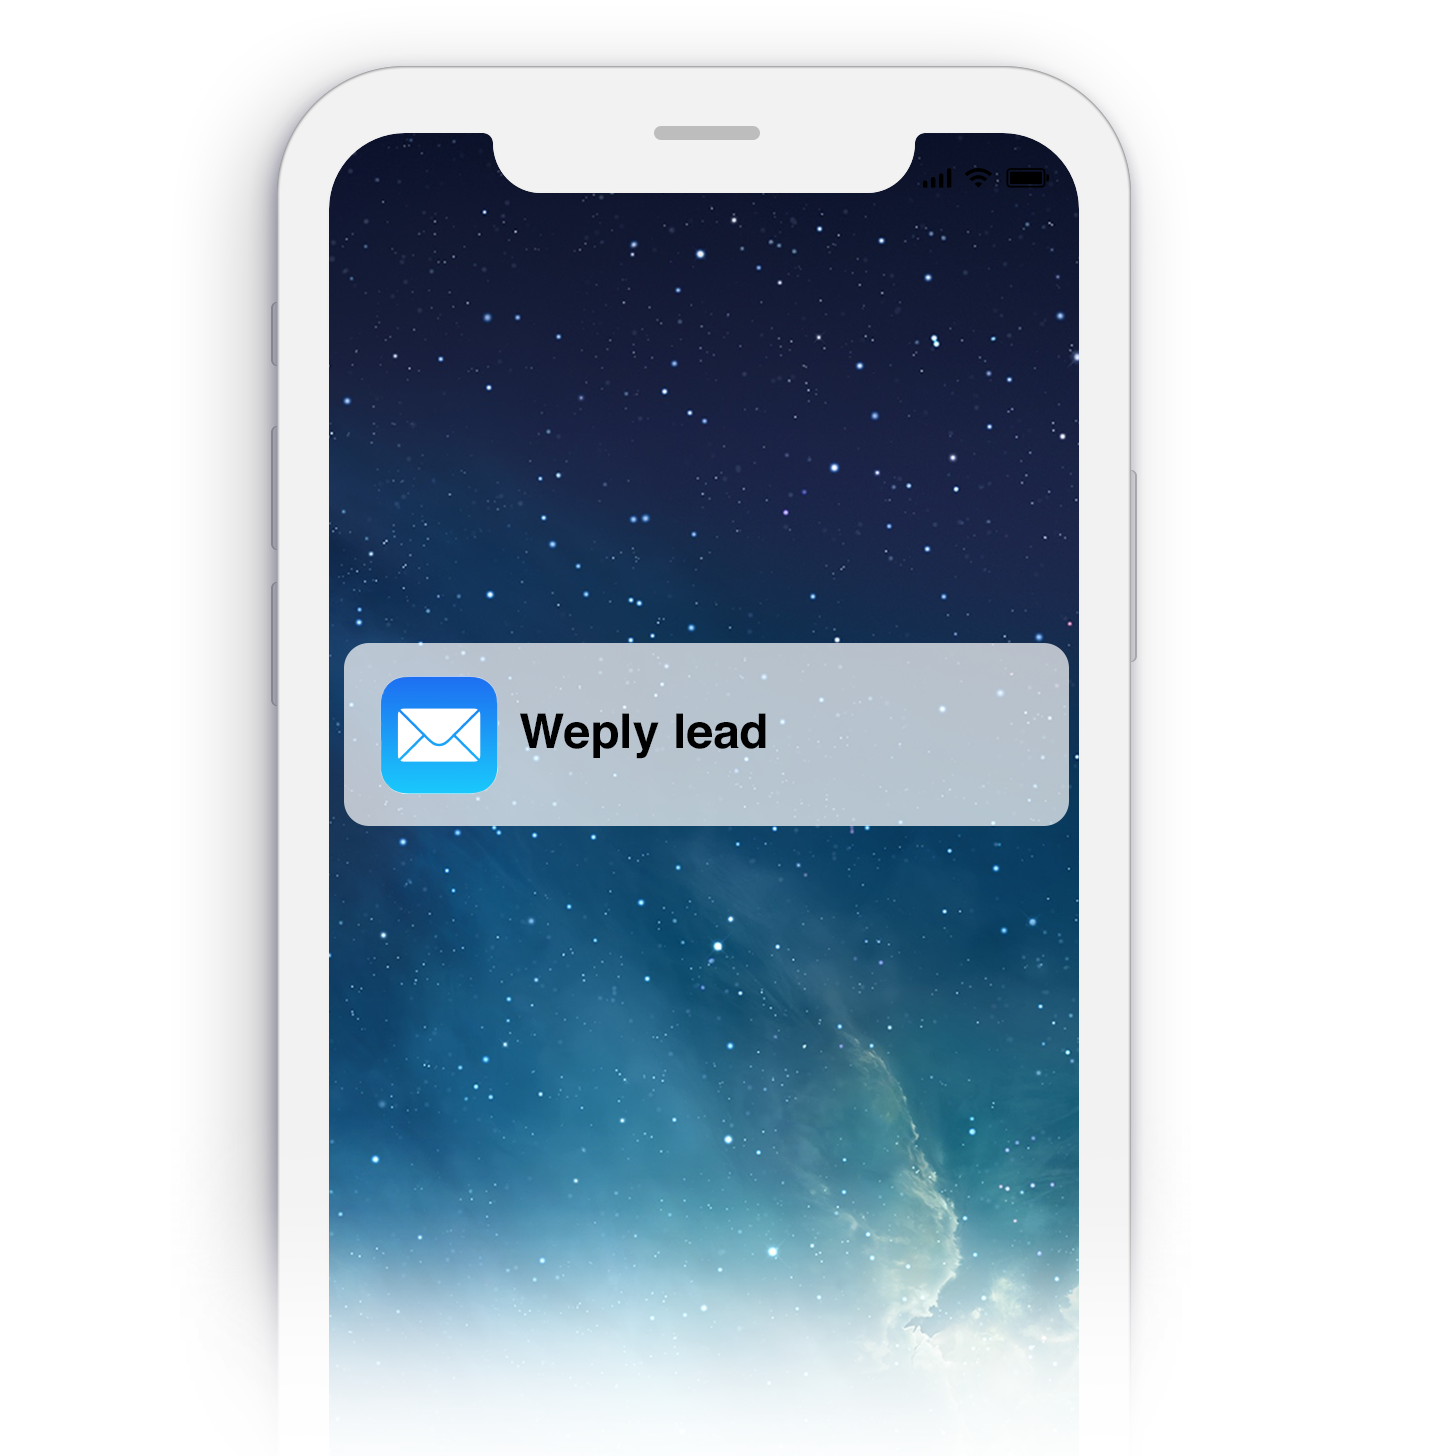 weply-lead-notification